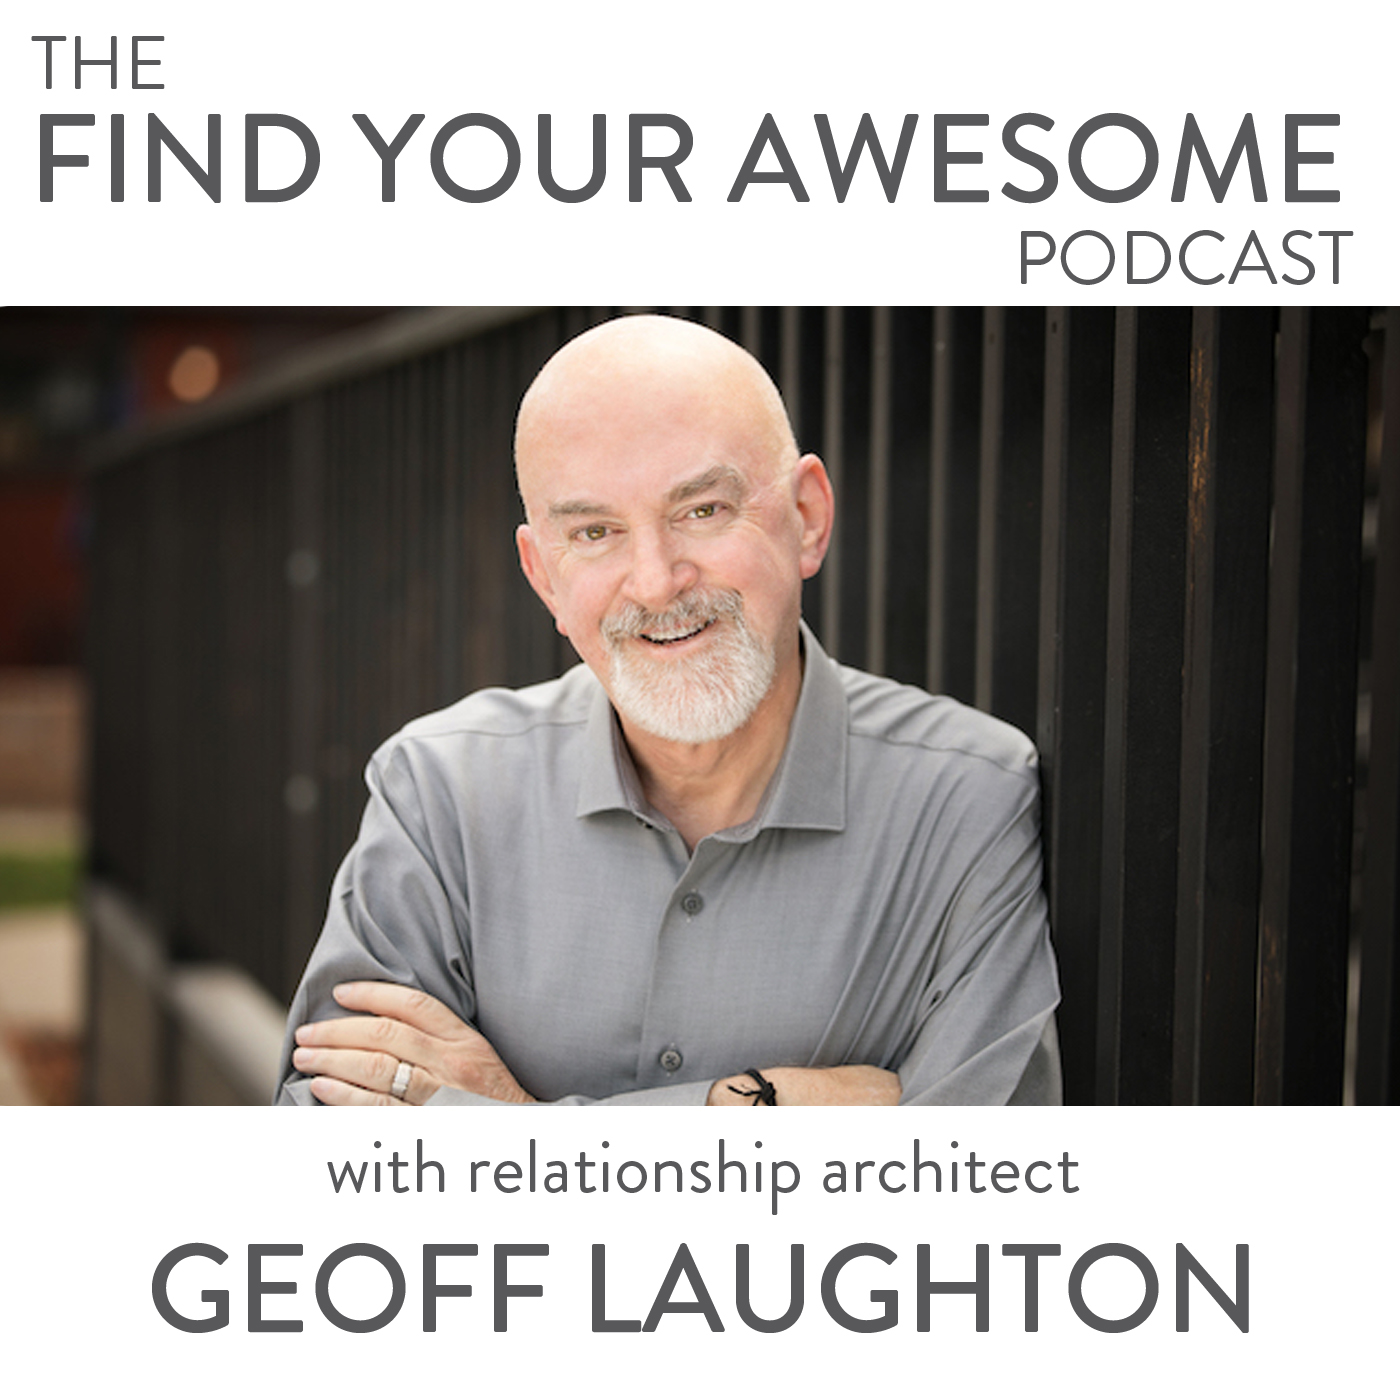 GeoffLaughton_podcast_coverart.jpg